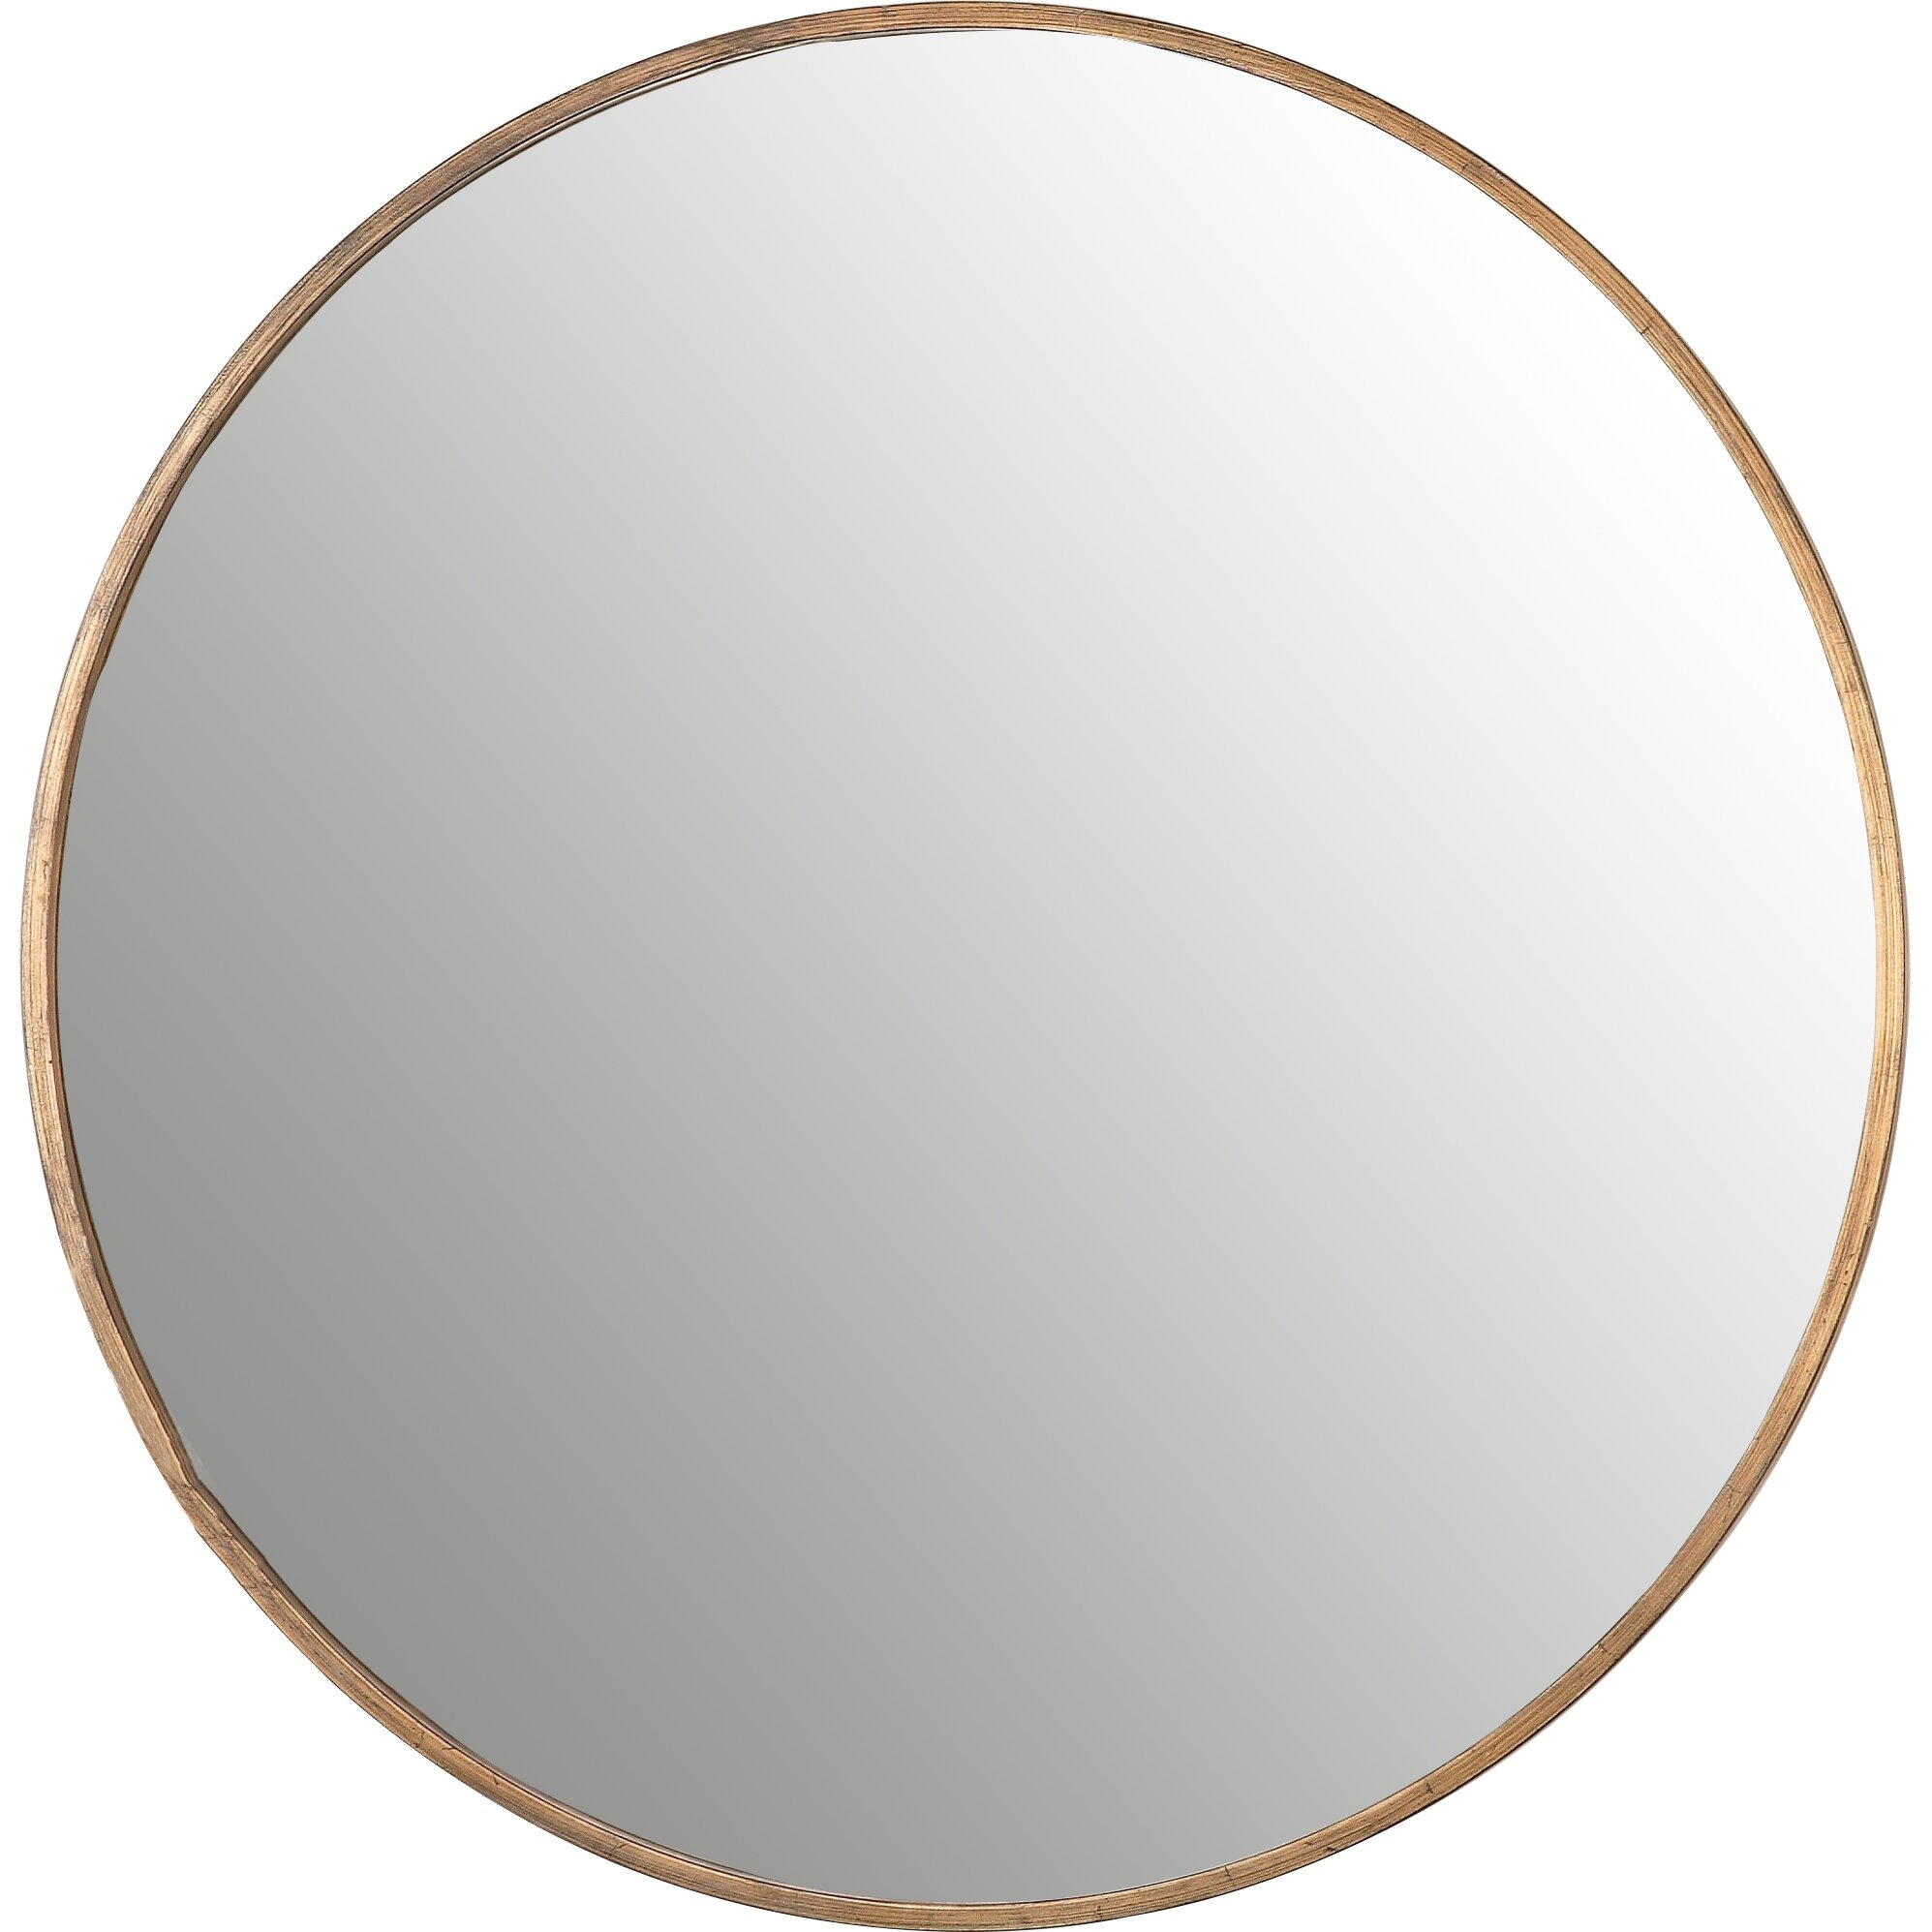 Bronwyn round mirror by corrigan studio